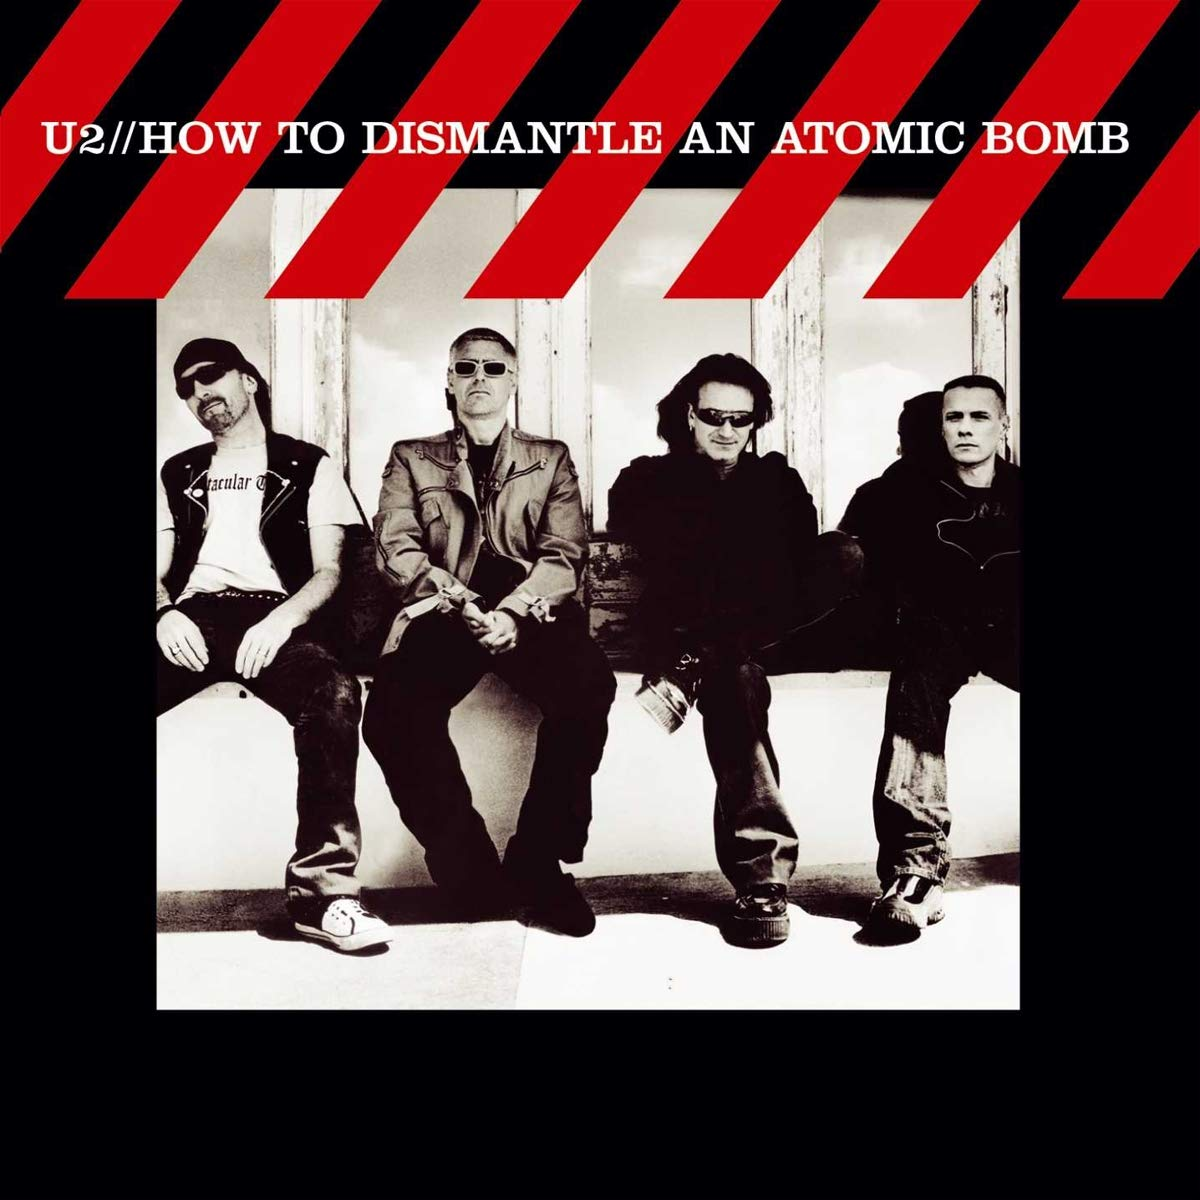 U2, How To Dismantle An Atomic Bomb